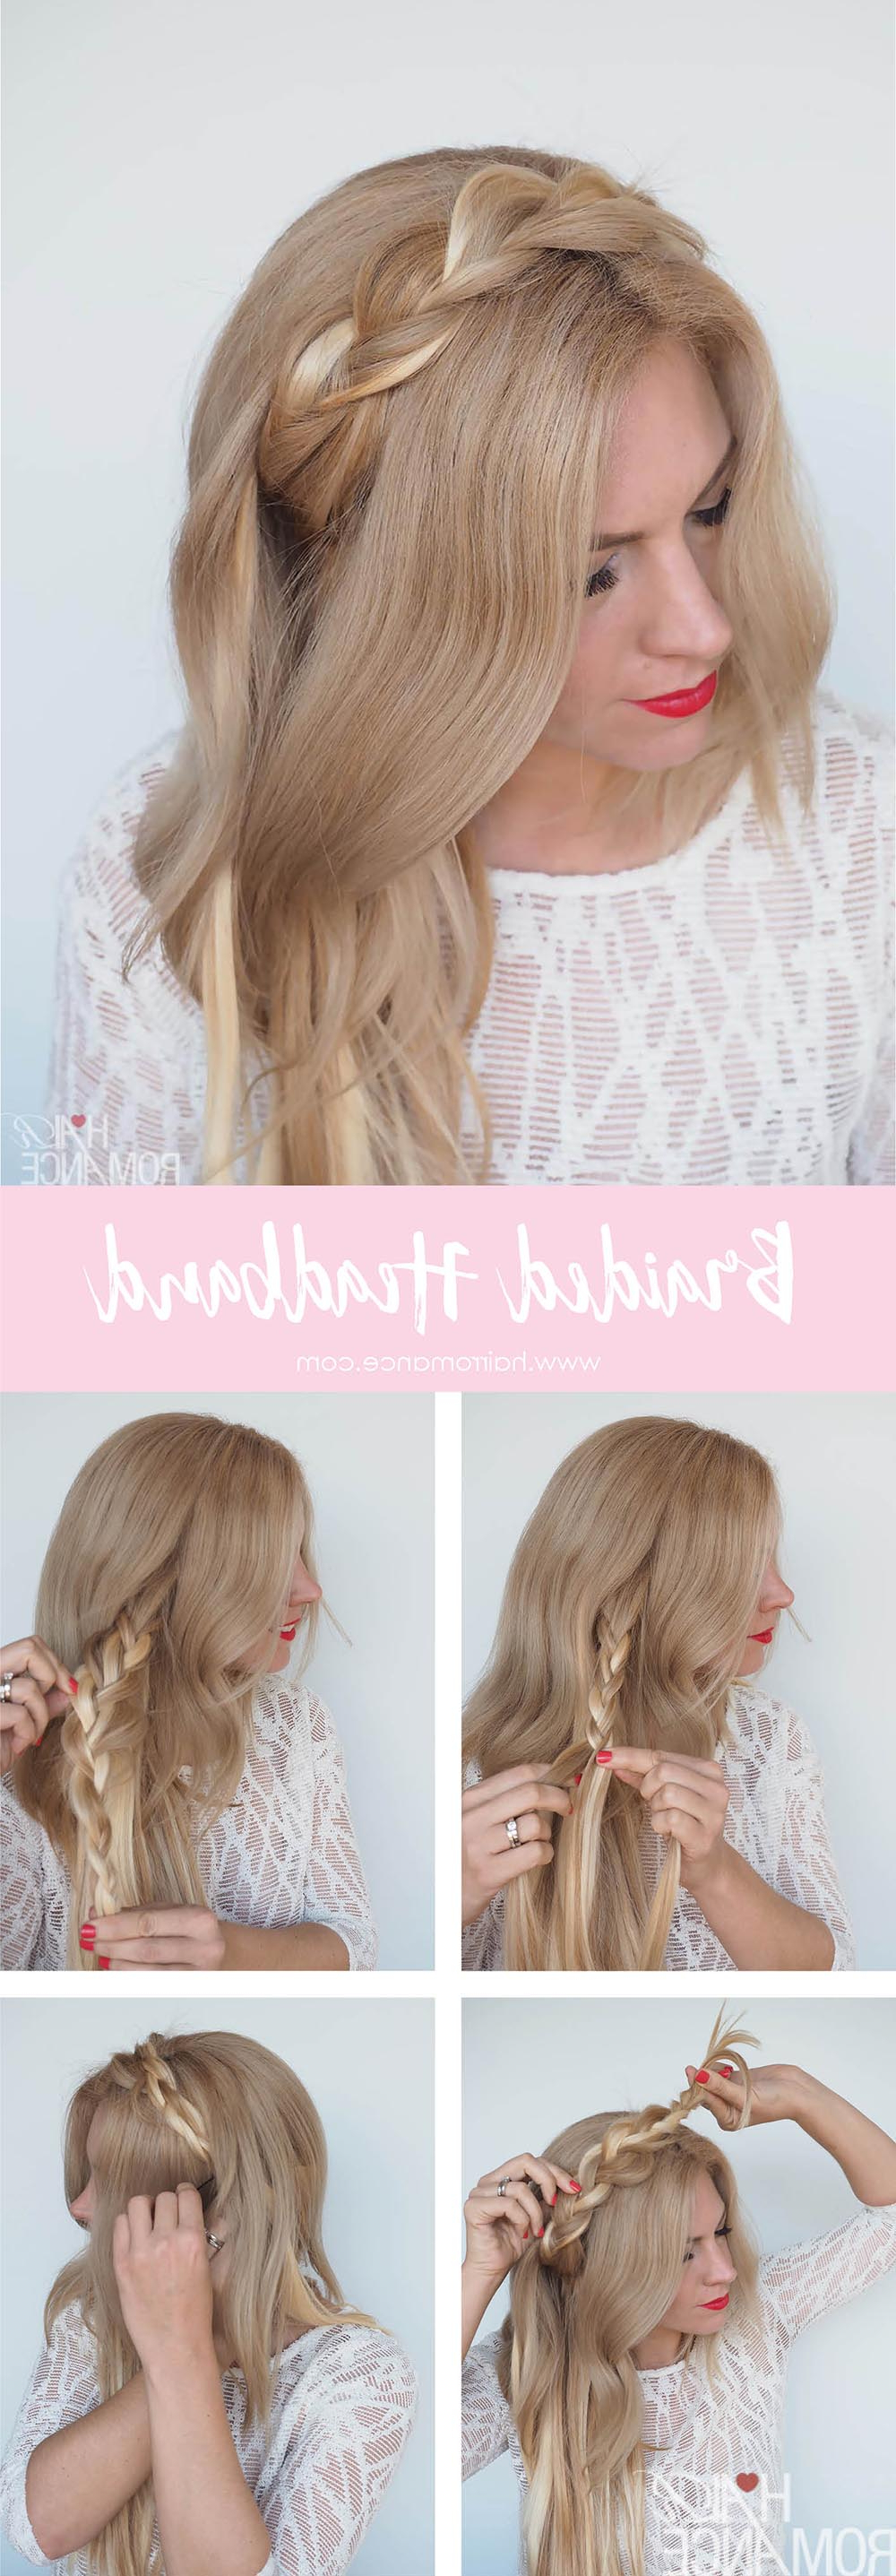 Preferred Braided Headband Hairstyles For Curly Hair Pertaining To Braided Headband Hairstyle Tutorial – Hair Romance (Gallery 19 of 20)